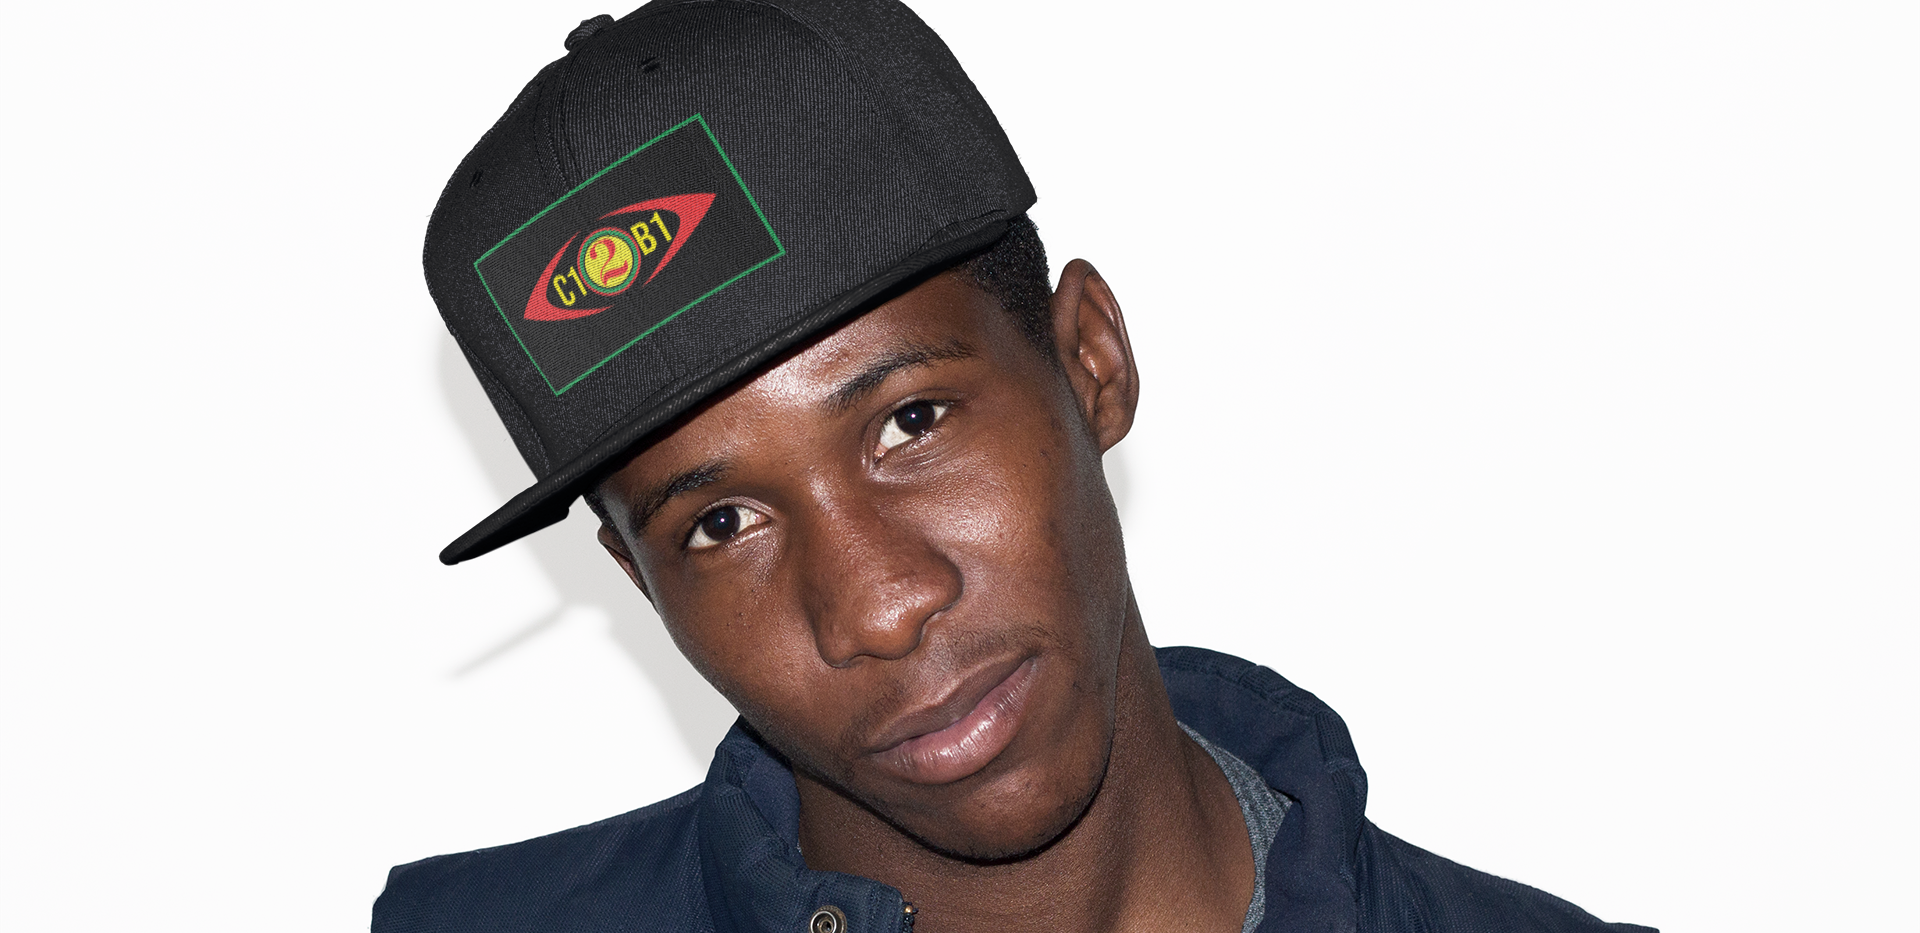 young-black-man-wearing-a-snapback-hat-i